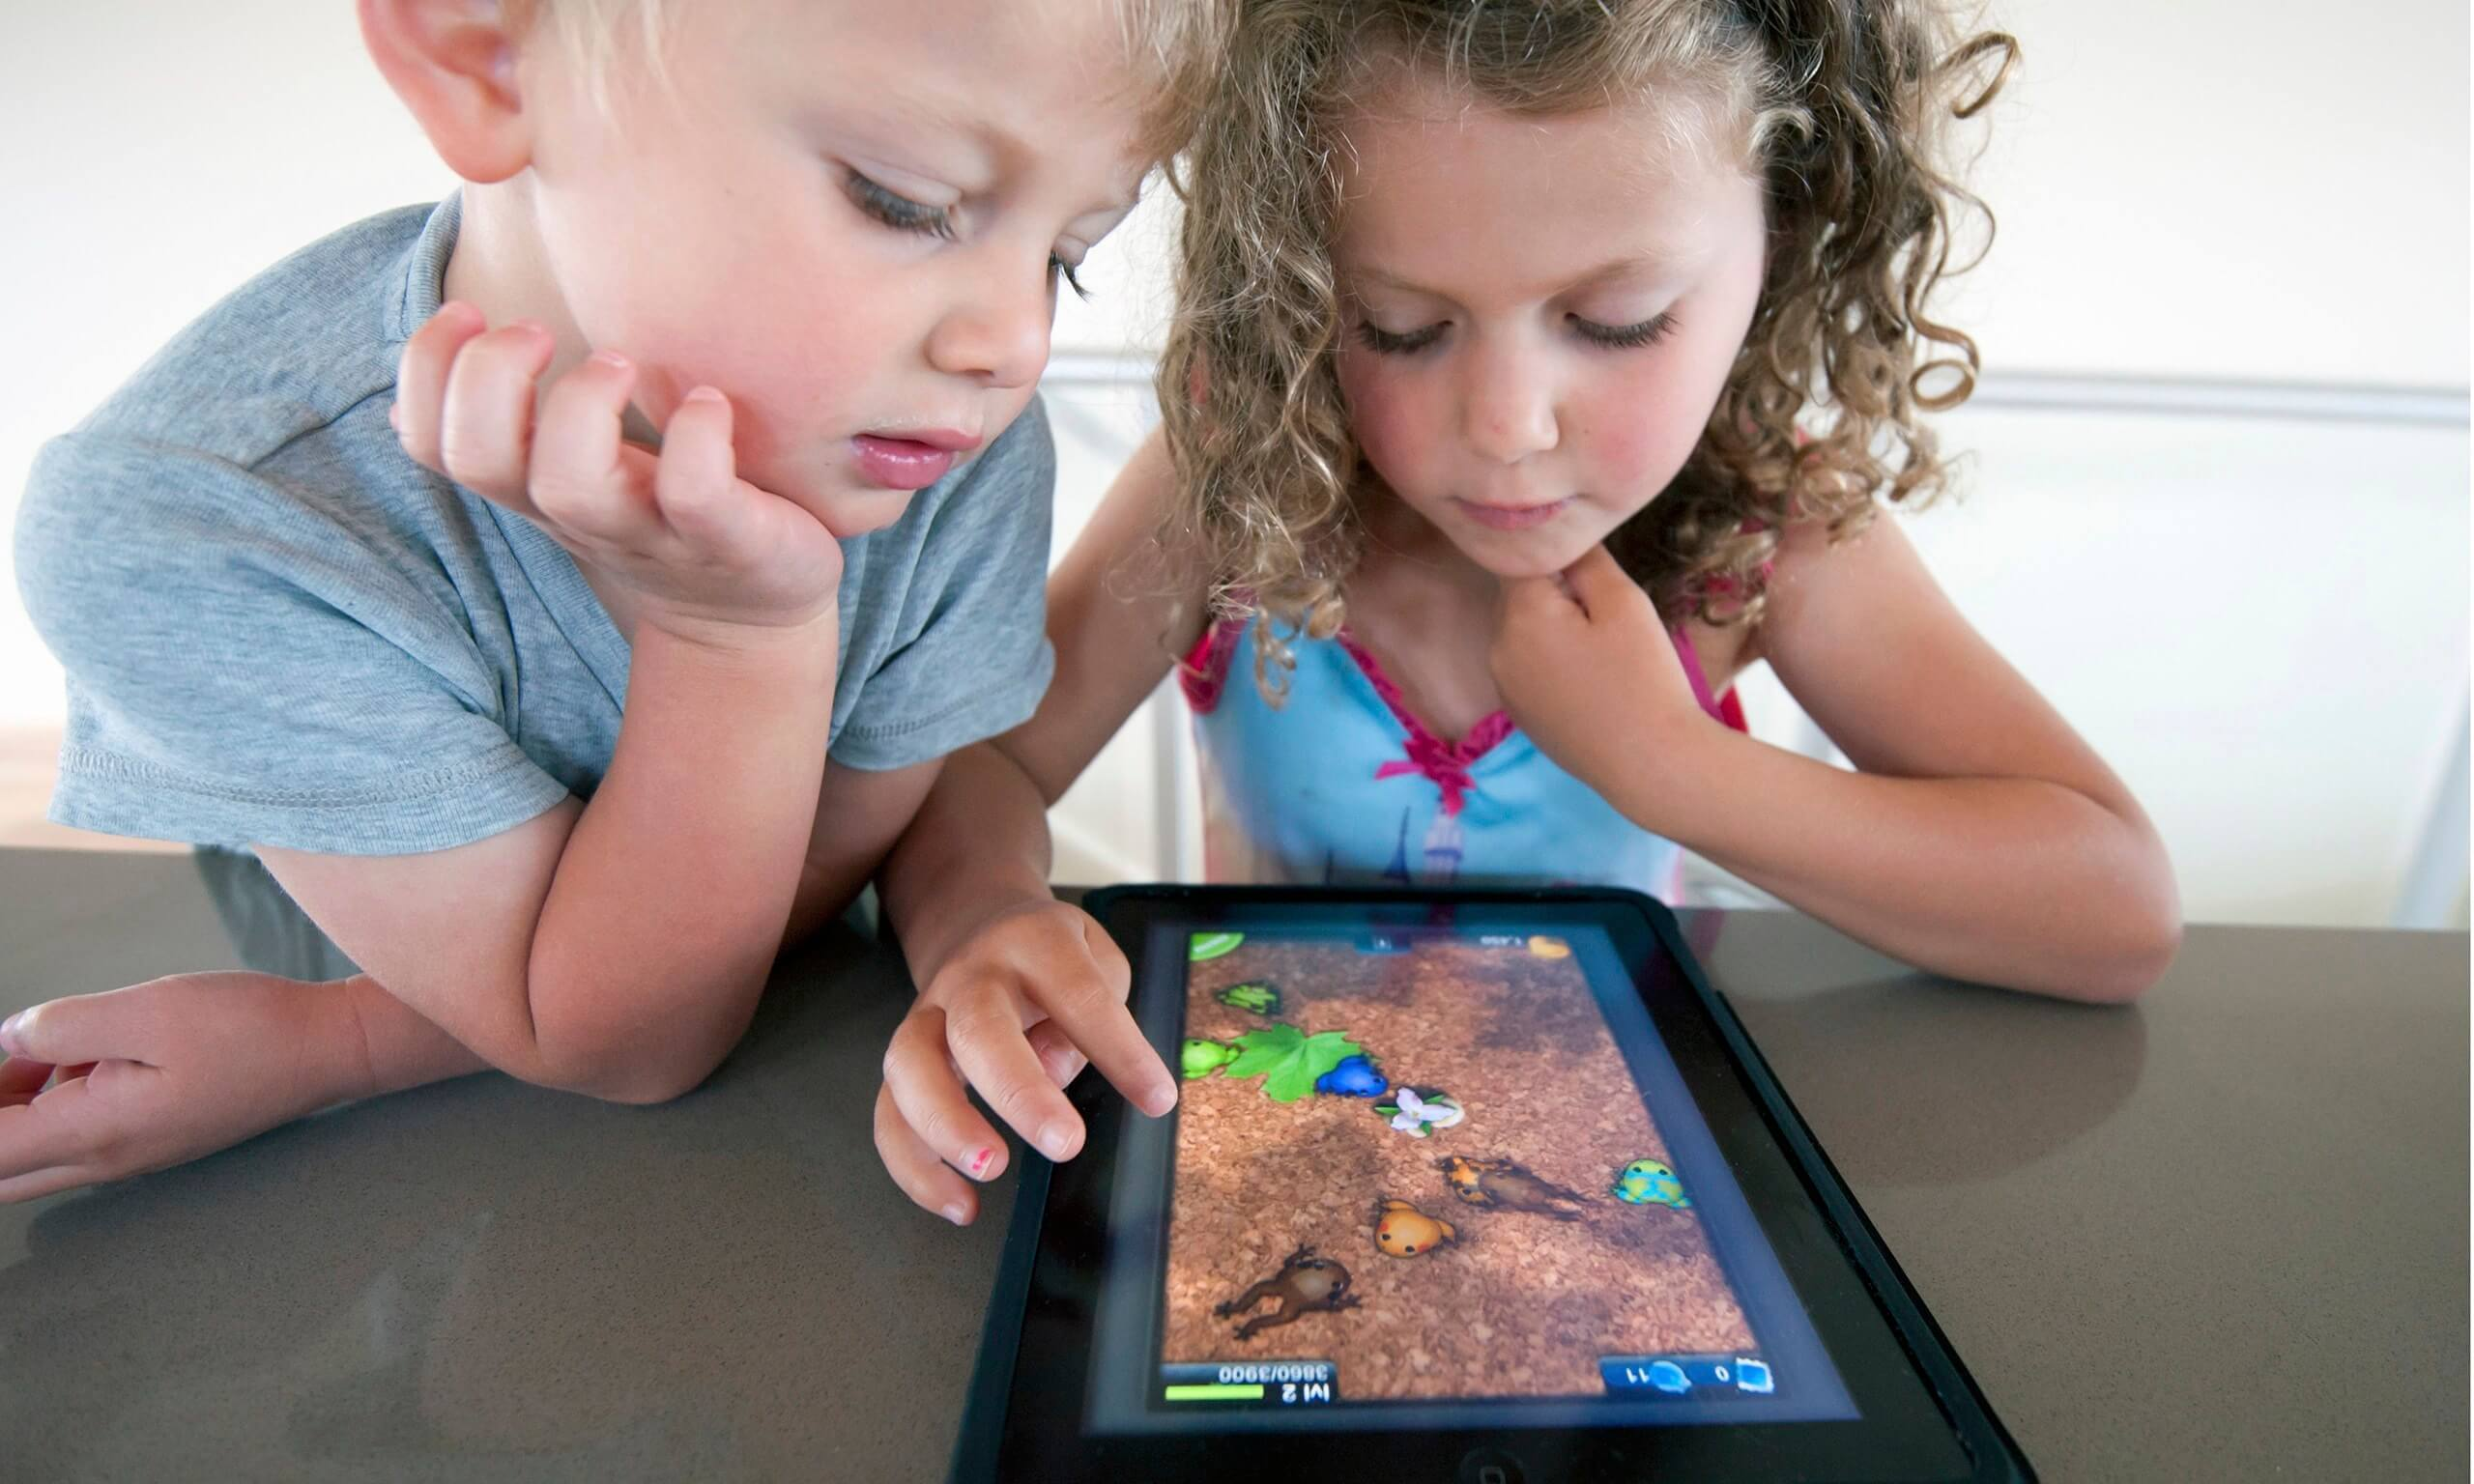 Digital games for kids